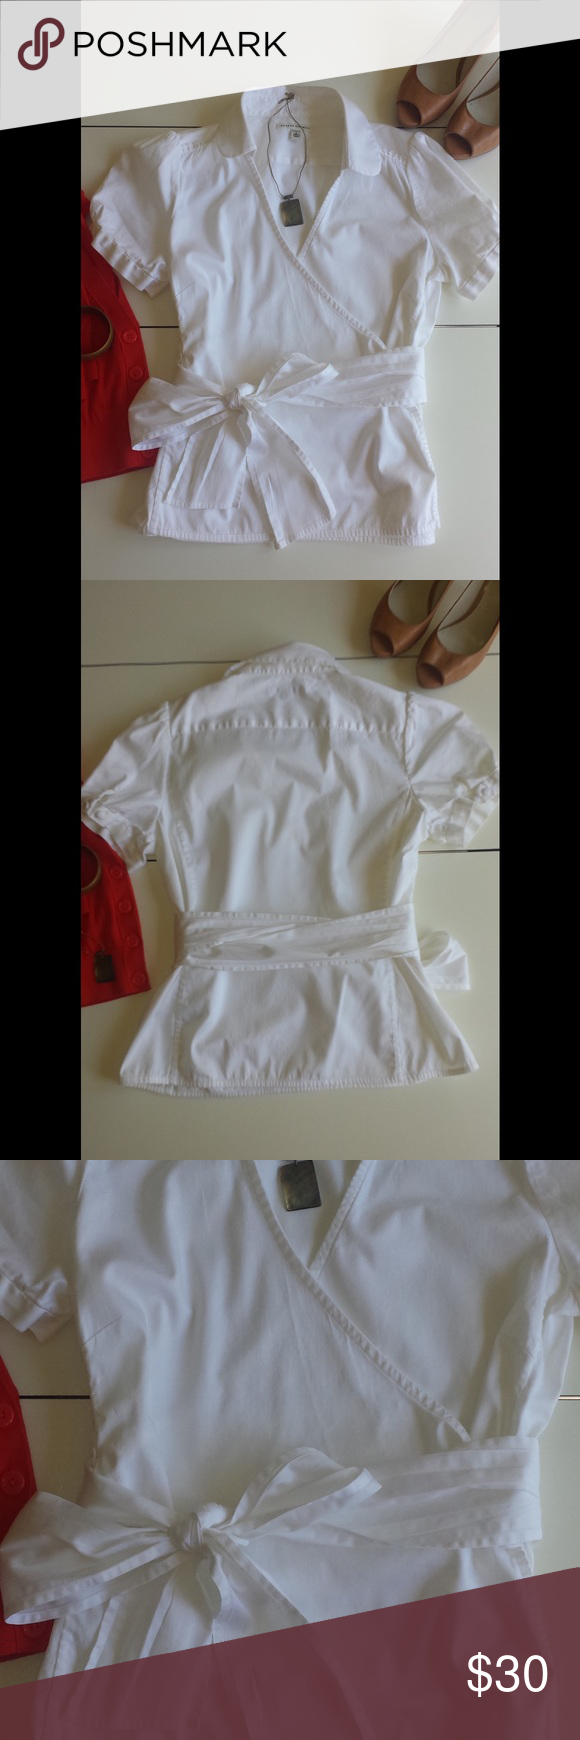 "Banana Republic Wrap Shirt 100% cotton. White wrap shirt. Cute two button detail on the sleeves.  24"" long. In excellent condition with no rips or stains. Banana Republic Tops Blouses"